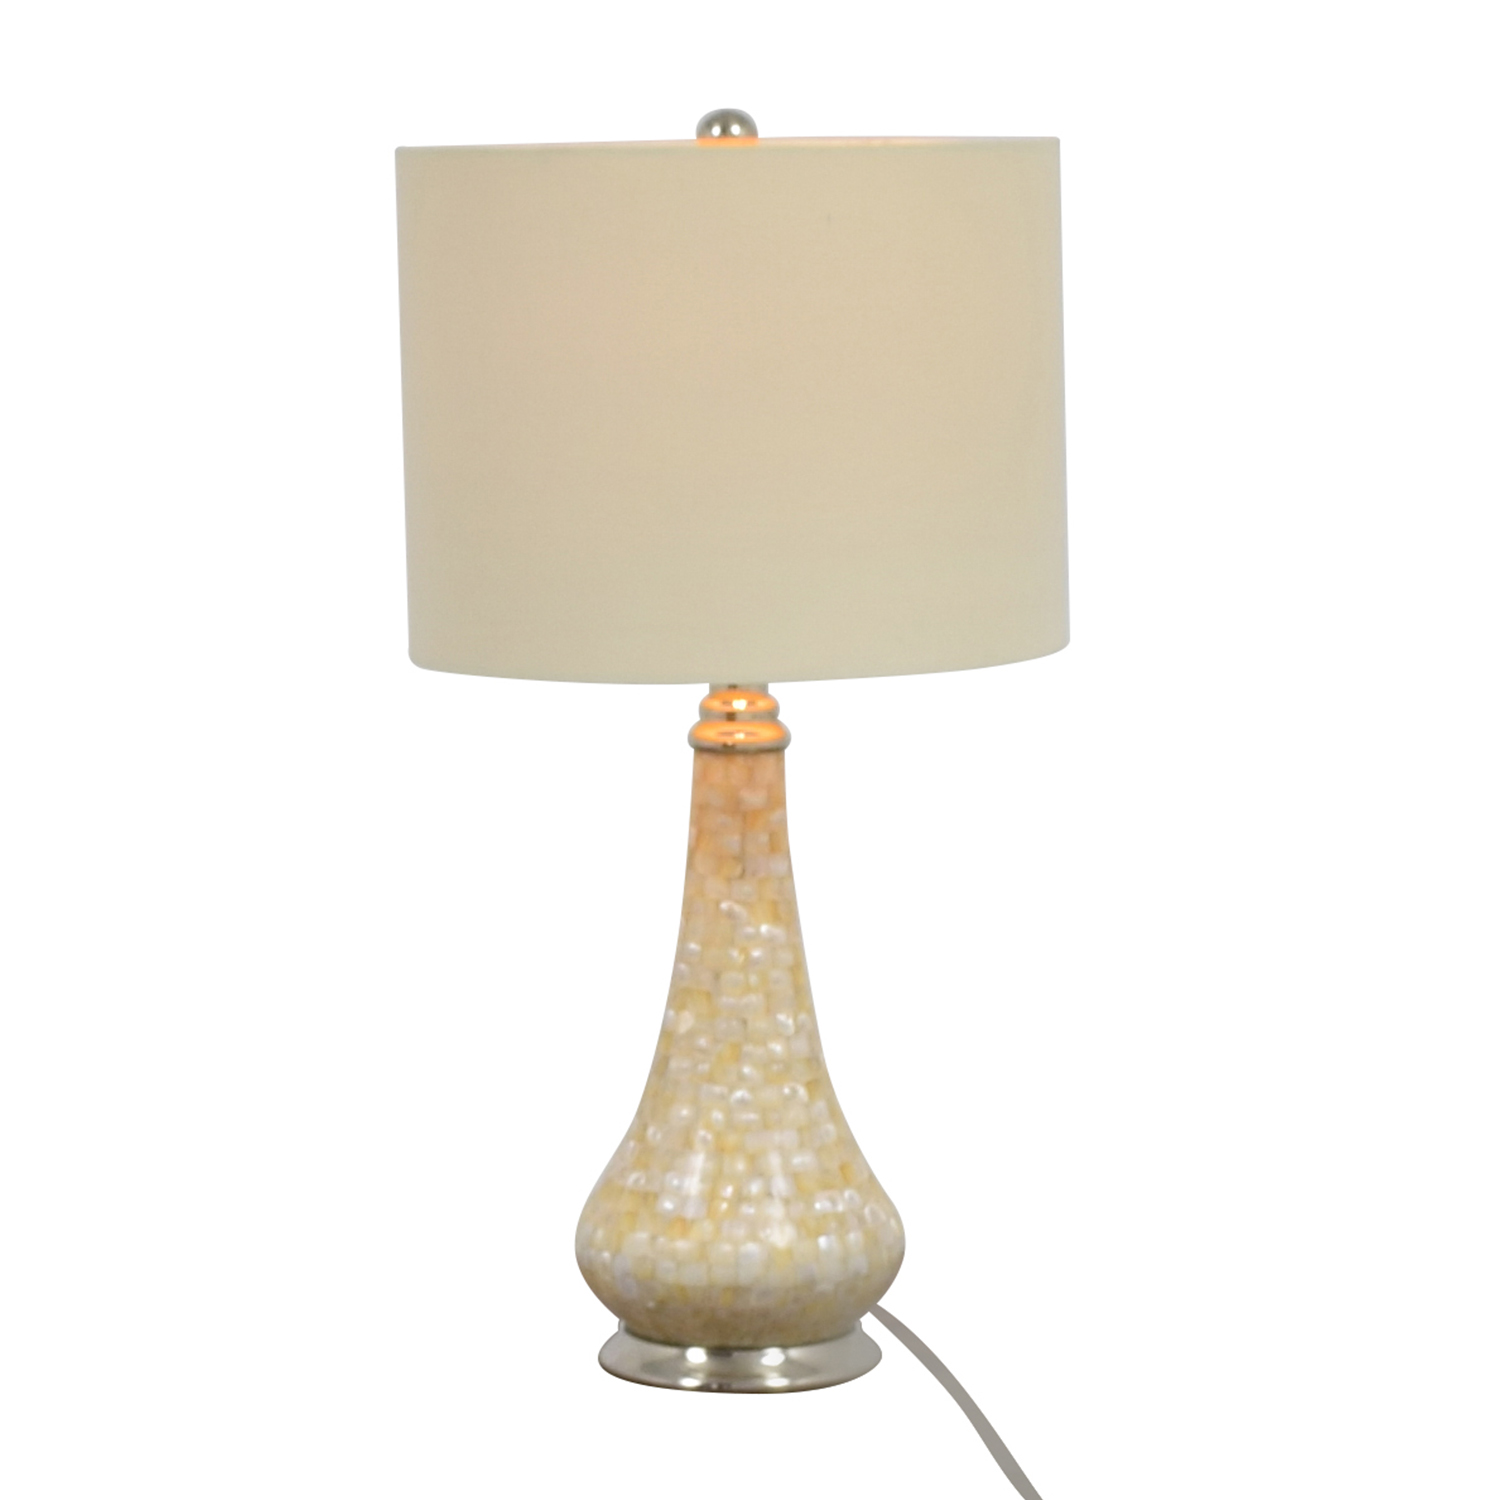 75 off pier 1 pier 1 imports mother of pearl accent lamp decor